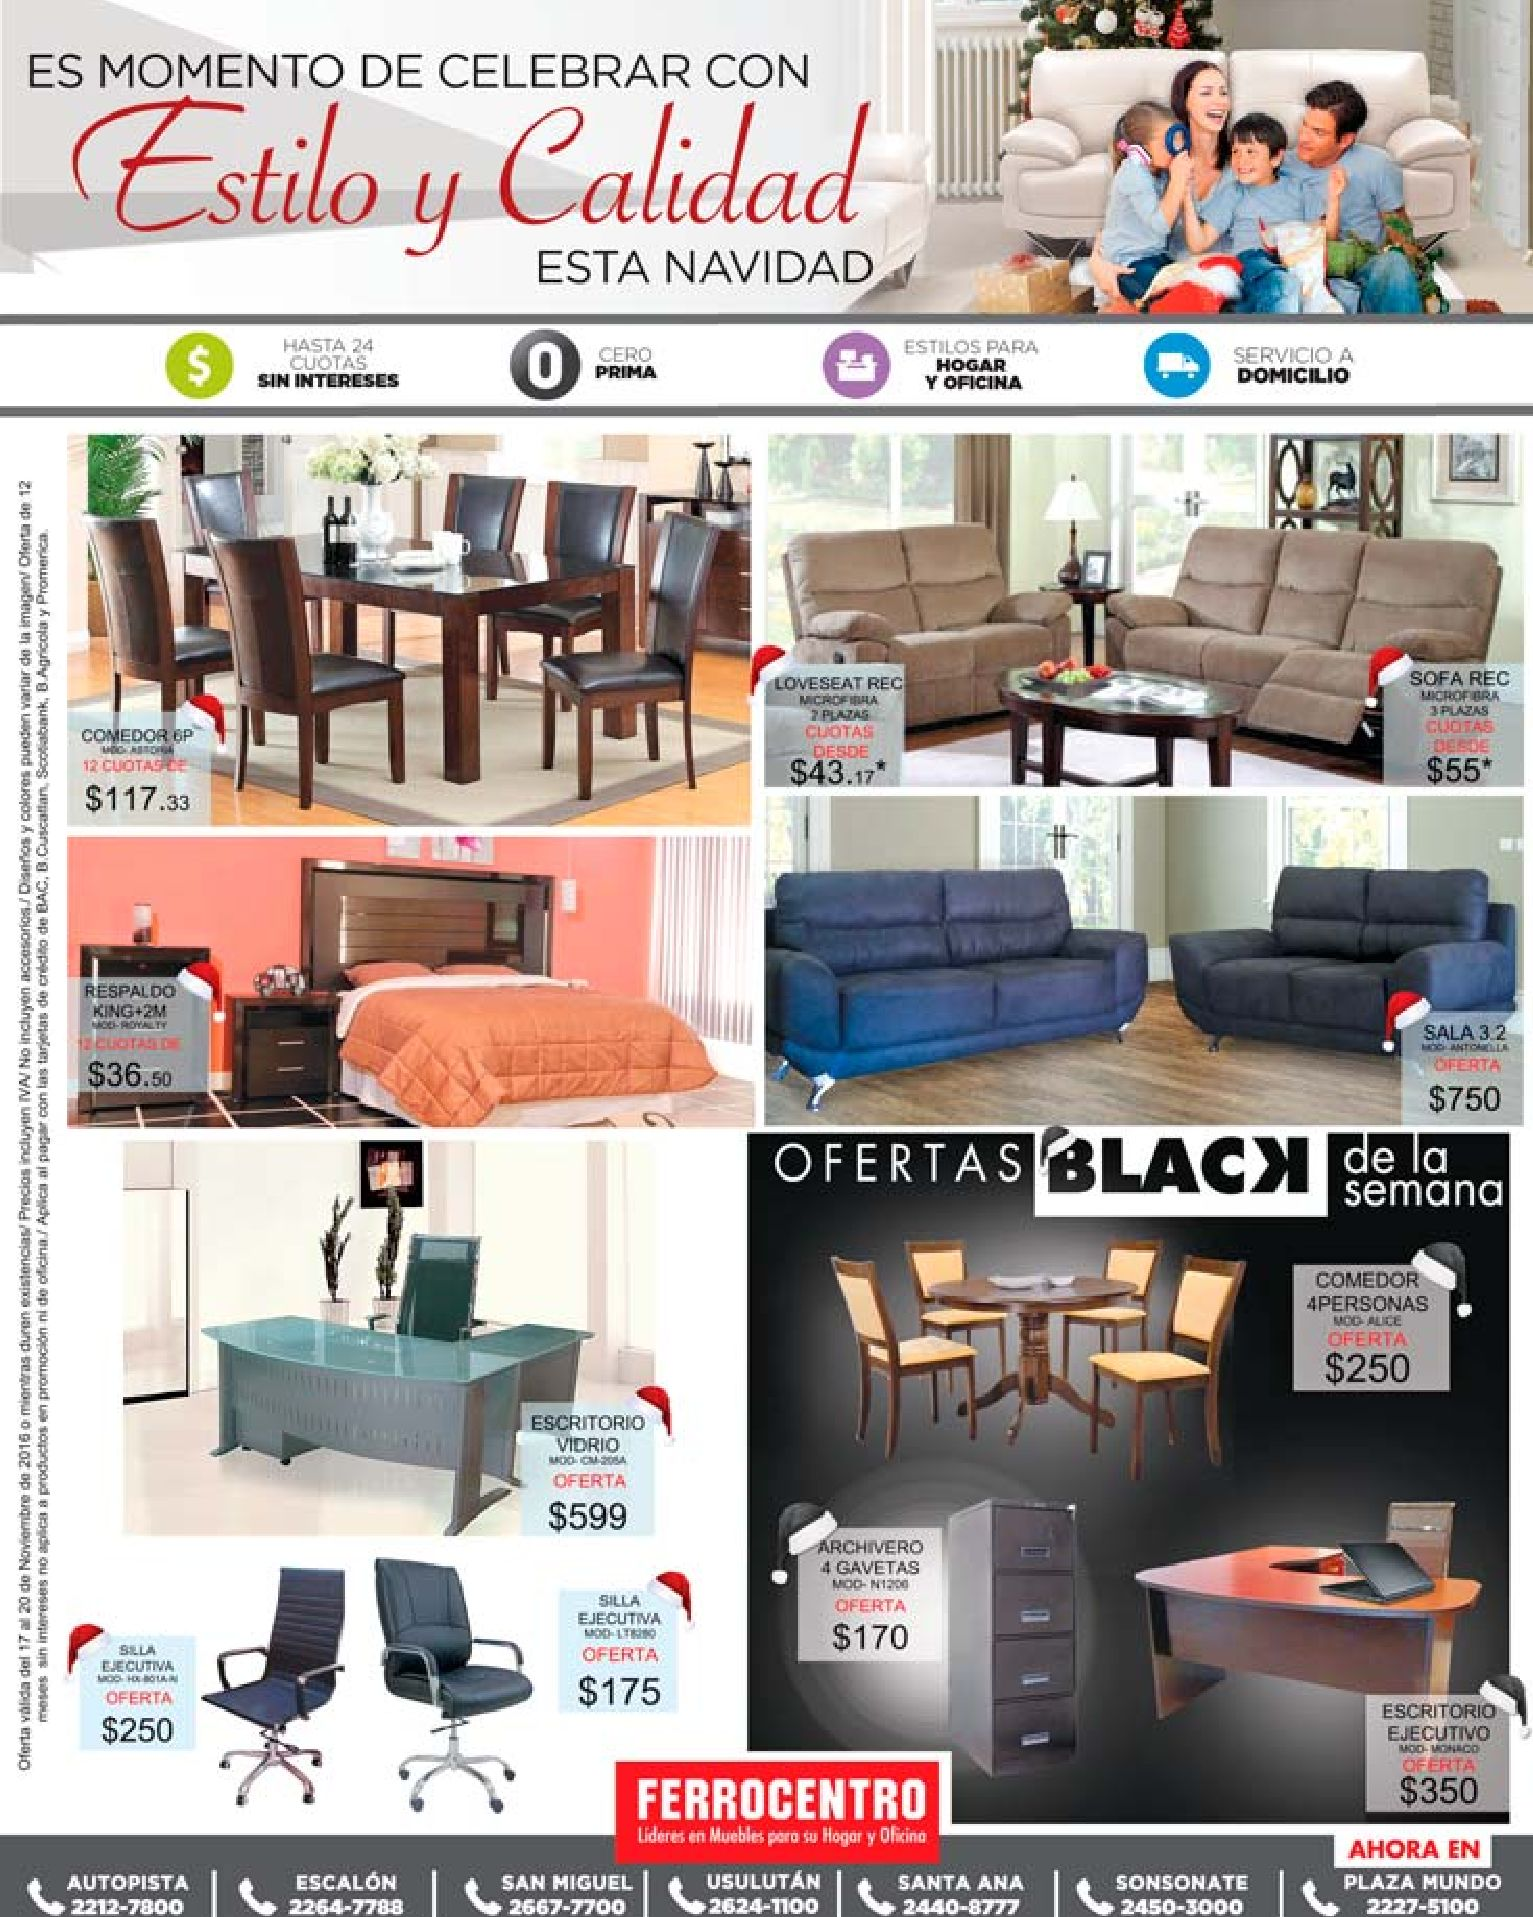 furniture-black-friday-2016-great-deals